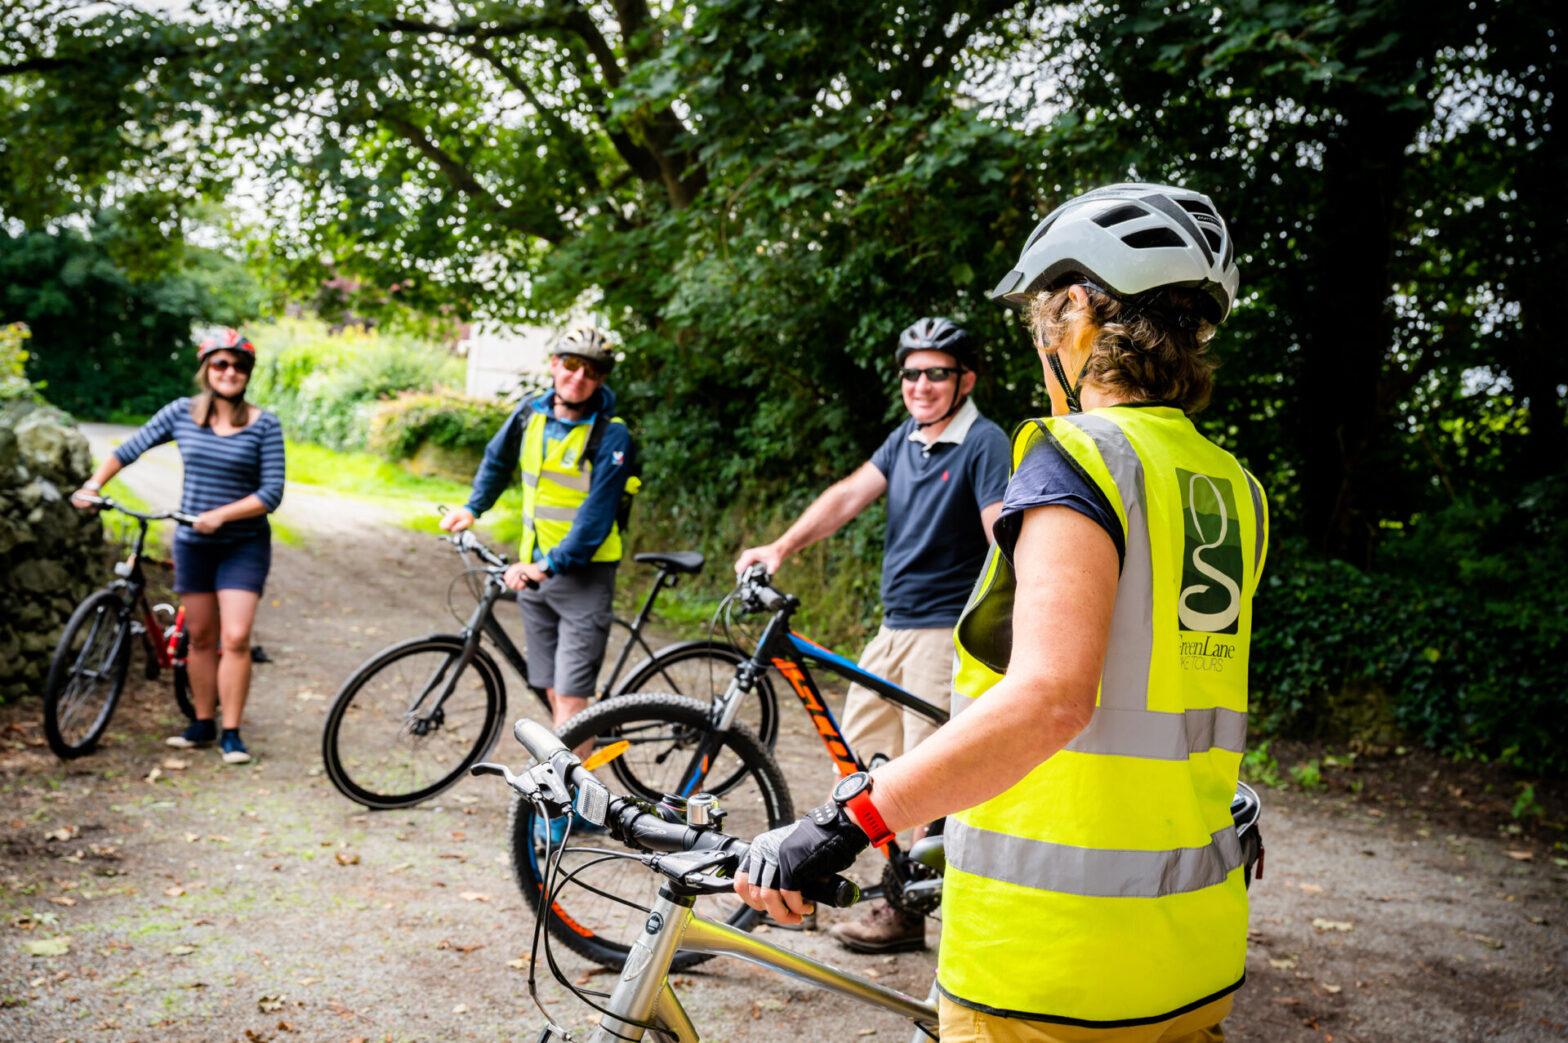 A briefing before embarking on a guided bike tour by Green Lane Bike Tours